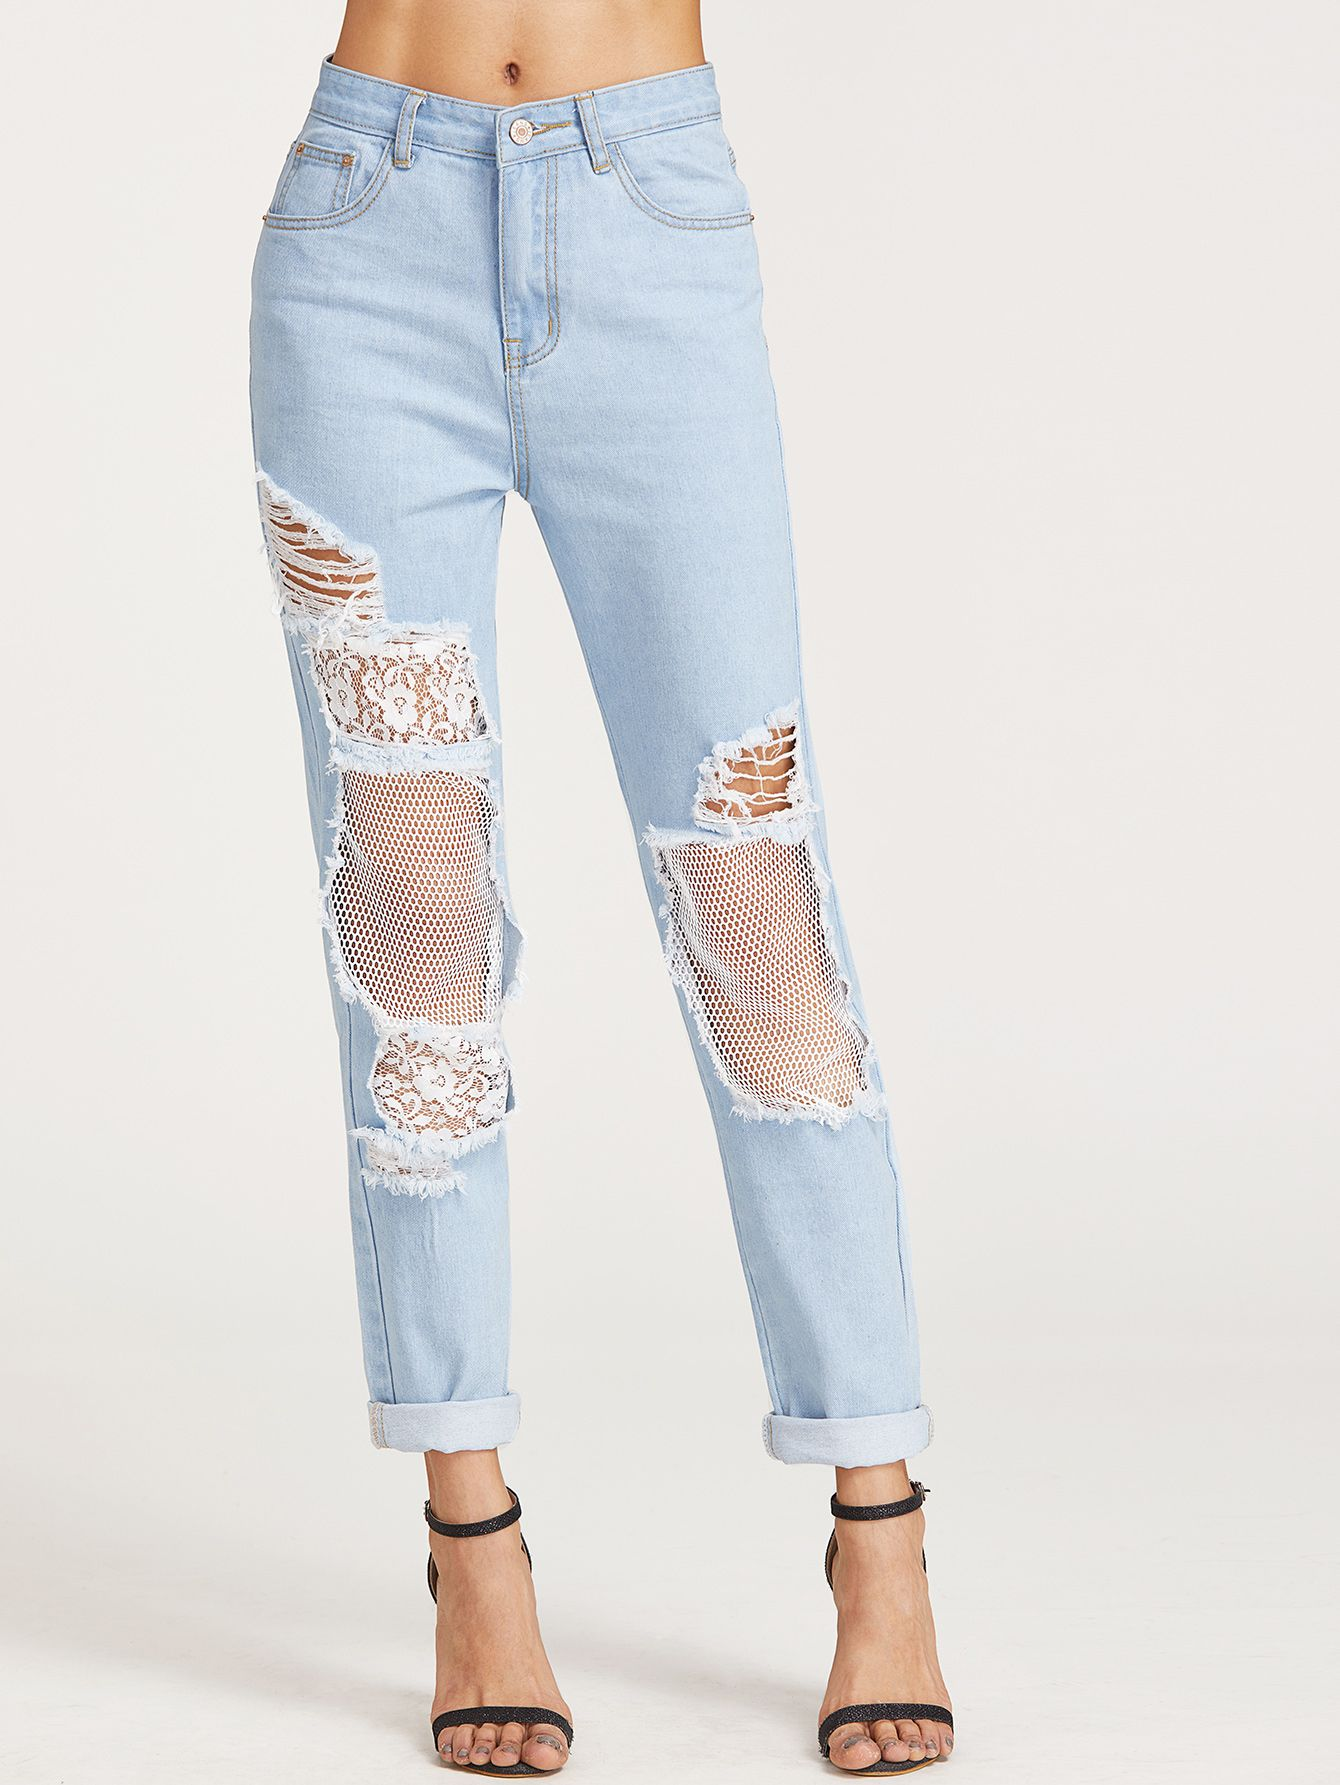 a1443fa27efc1 Shop Bleach Wash Ripped Fishnet Lined Boyfriend Jeans online. SheIn offers  Bleach Wash Ripped Fishnet Lined Boyfriend Jeans & more to fit your  fashionable ...